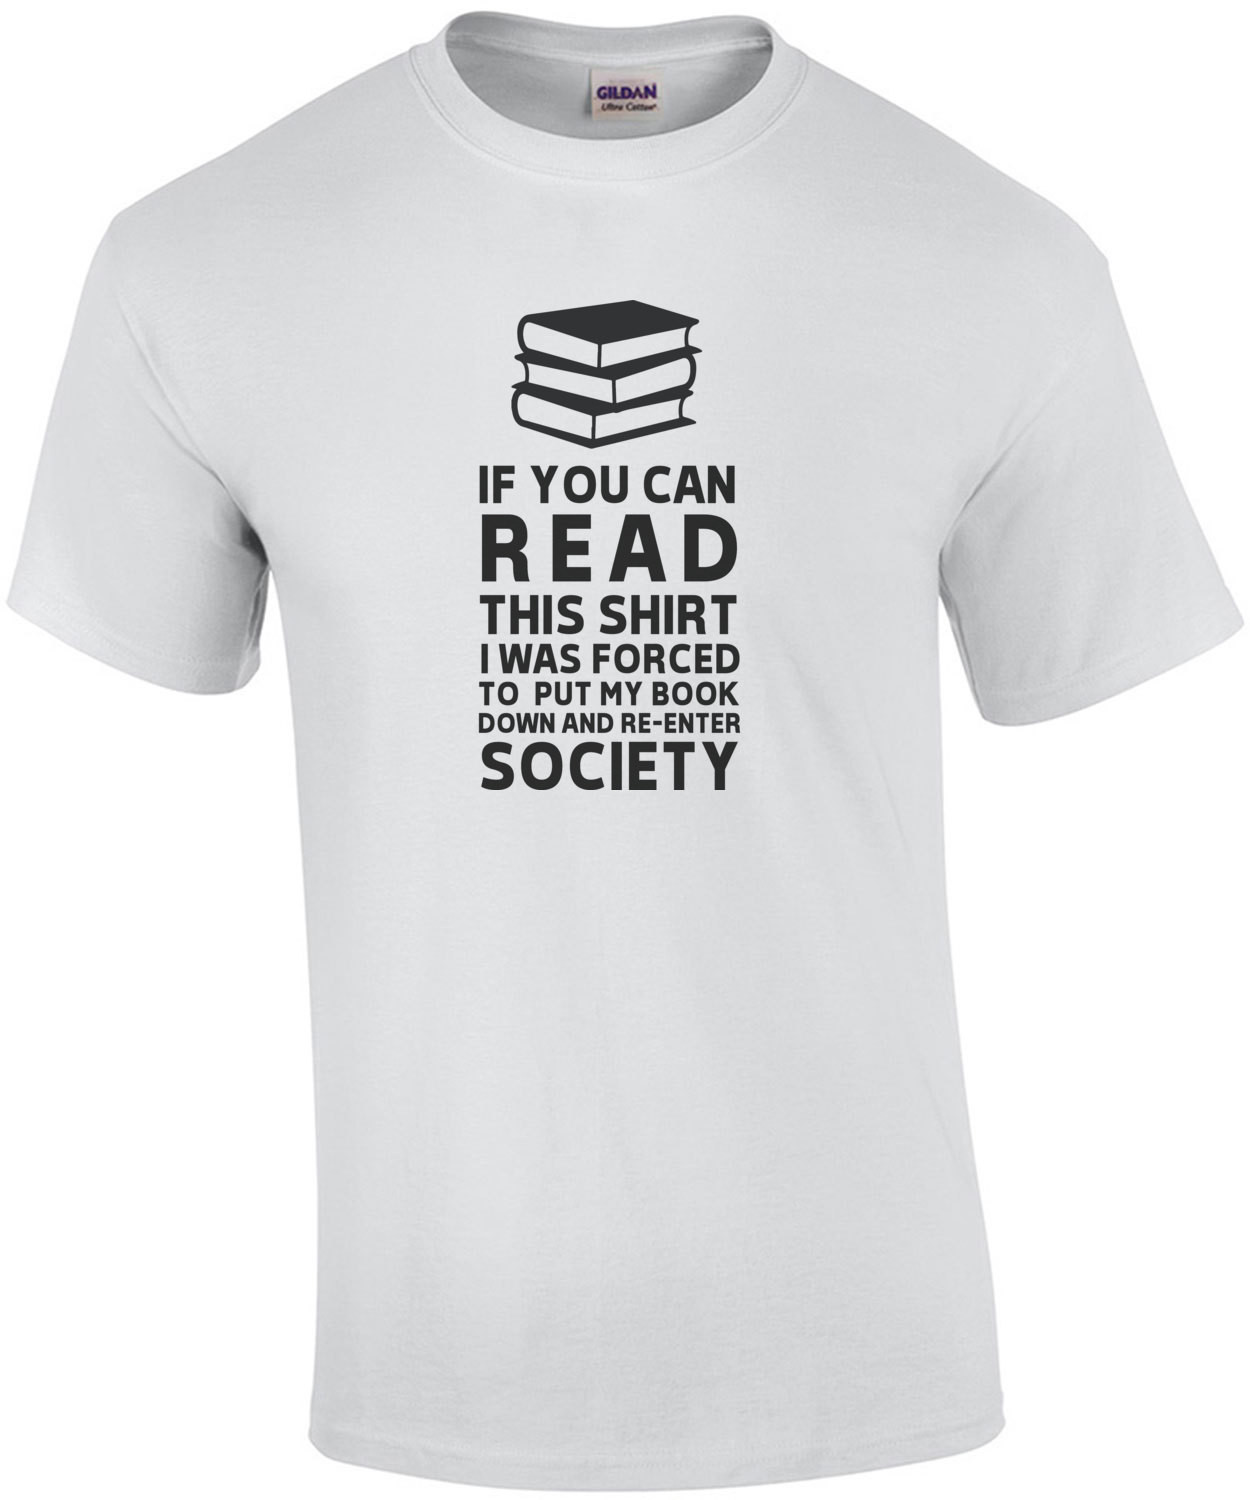 If you can read this shirt I was forced to put my book down and re-enter society - funny book worm t-shirt - funny reading shirt